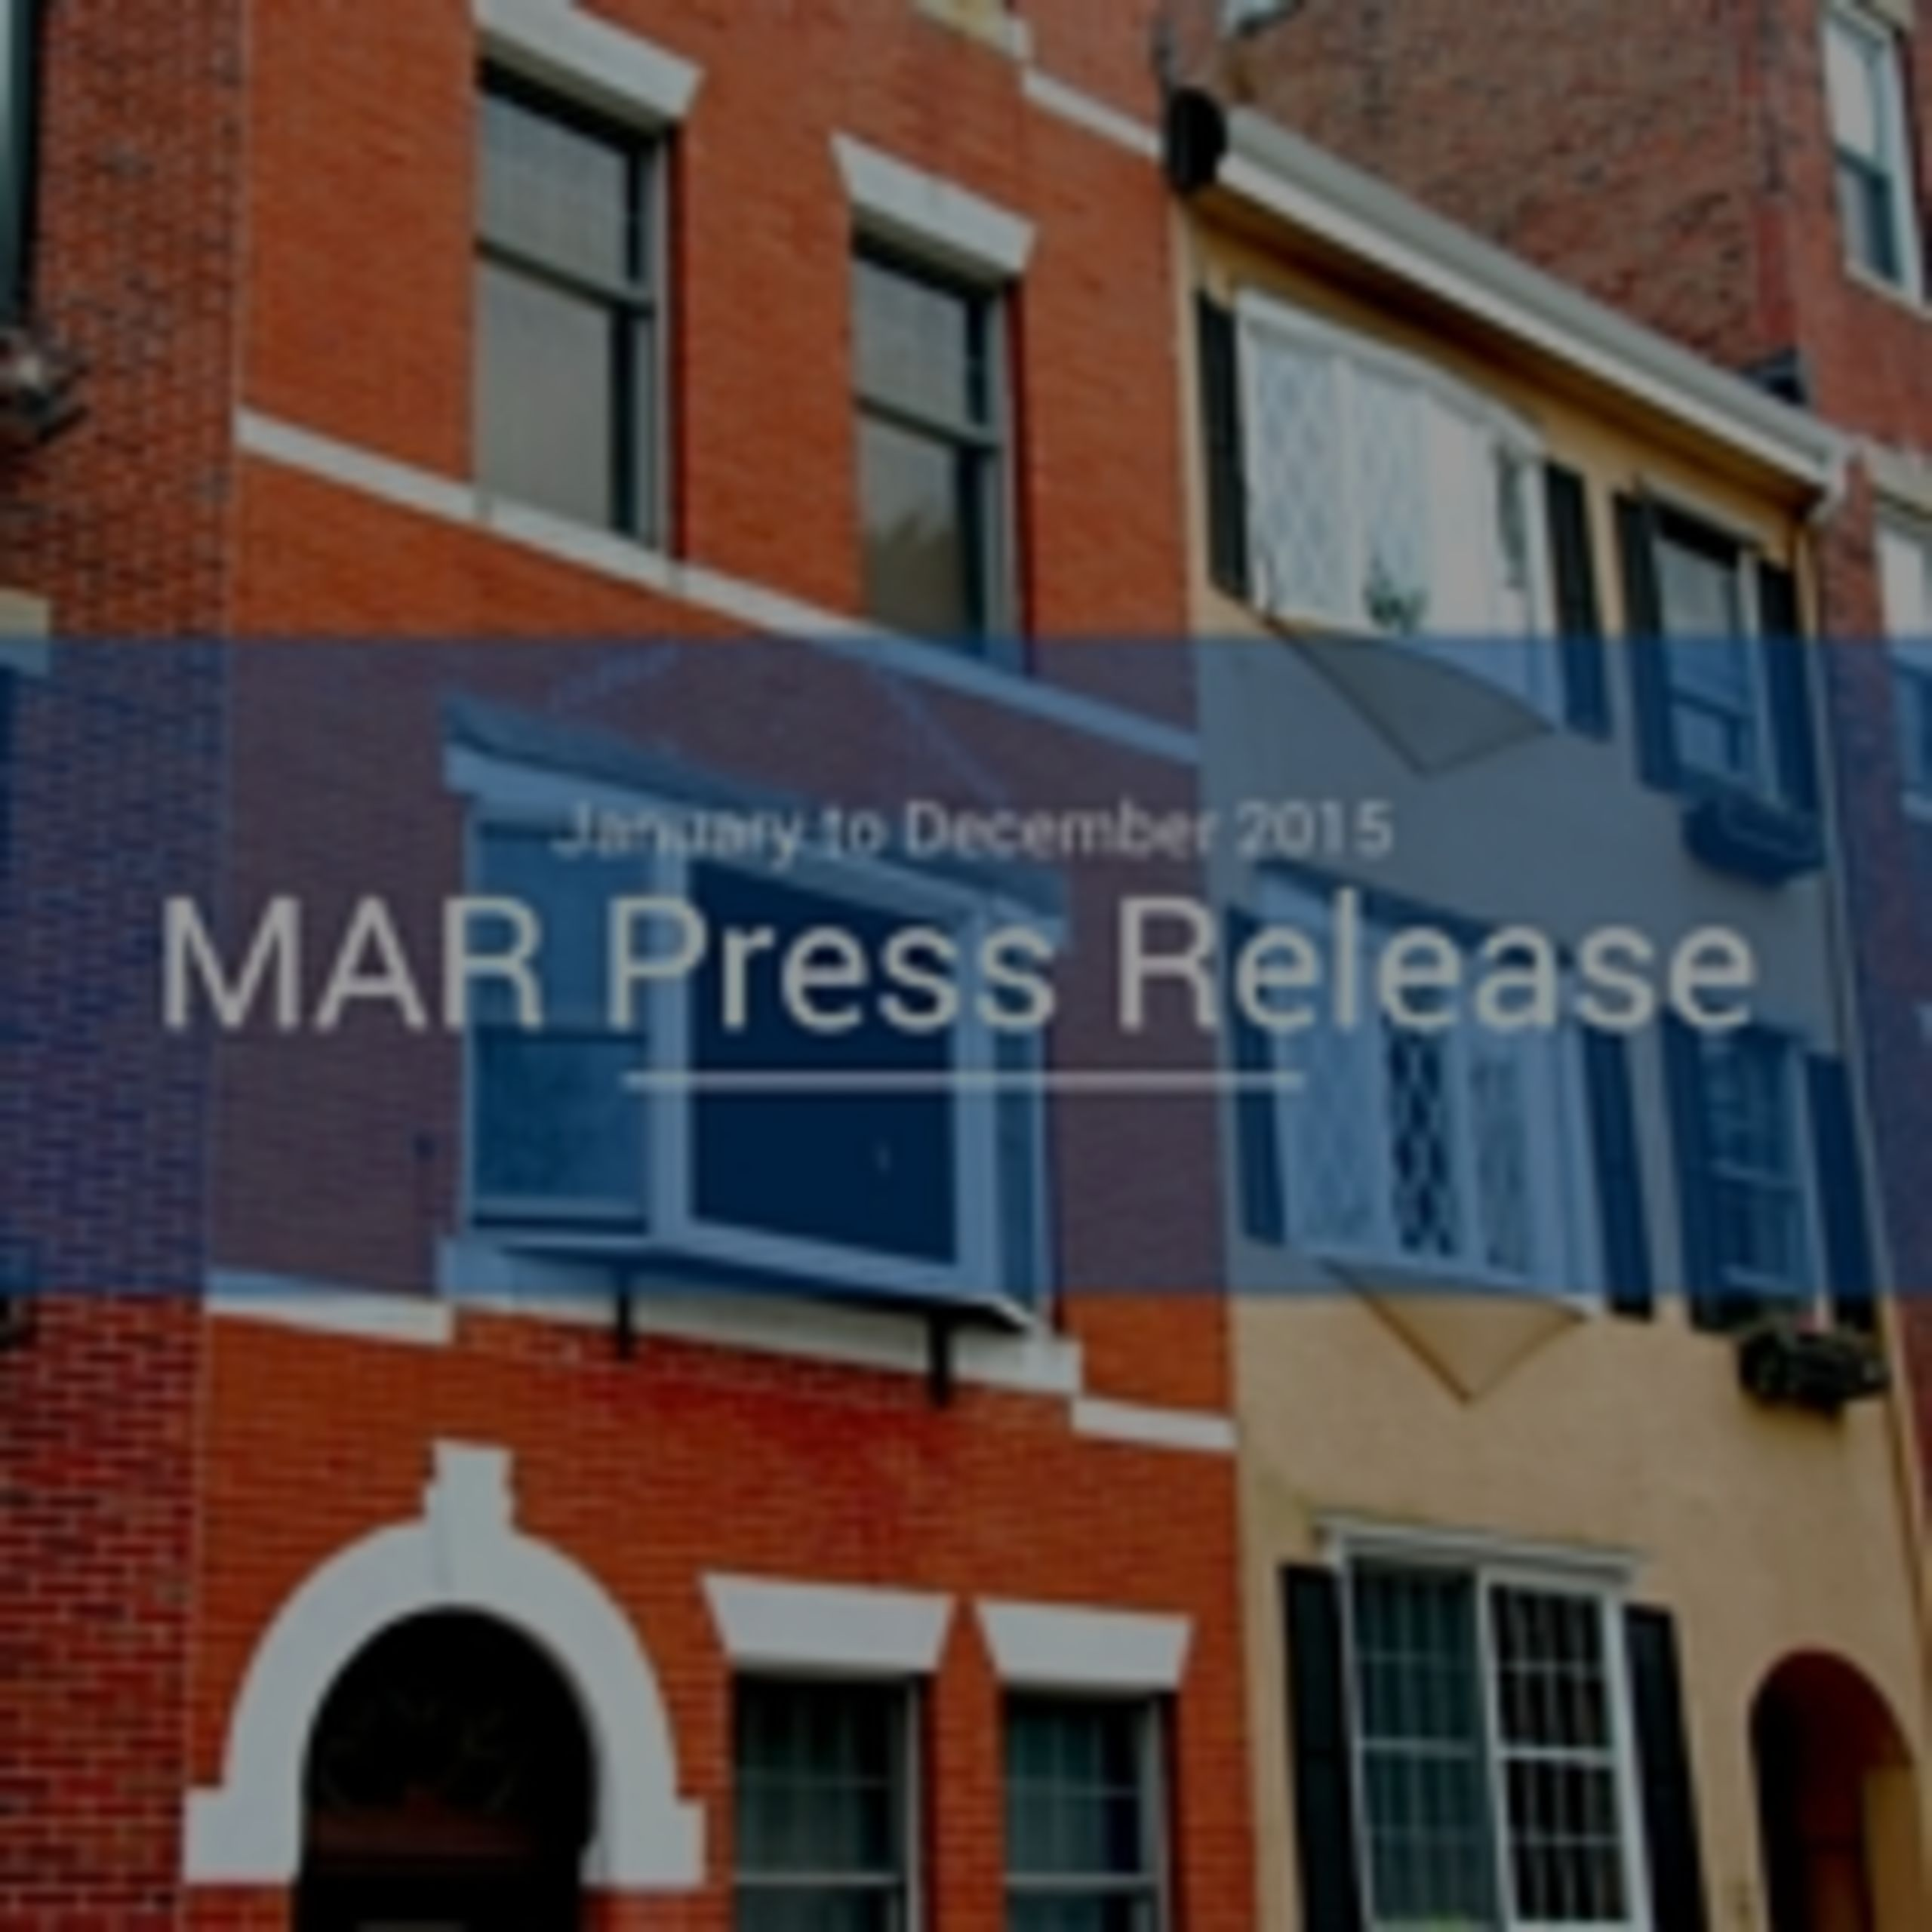 MAR Press Release: Sales and Values Up for 2015